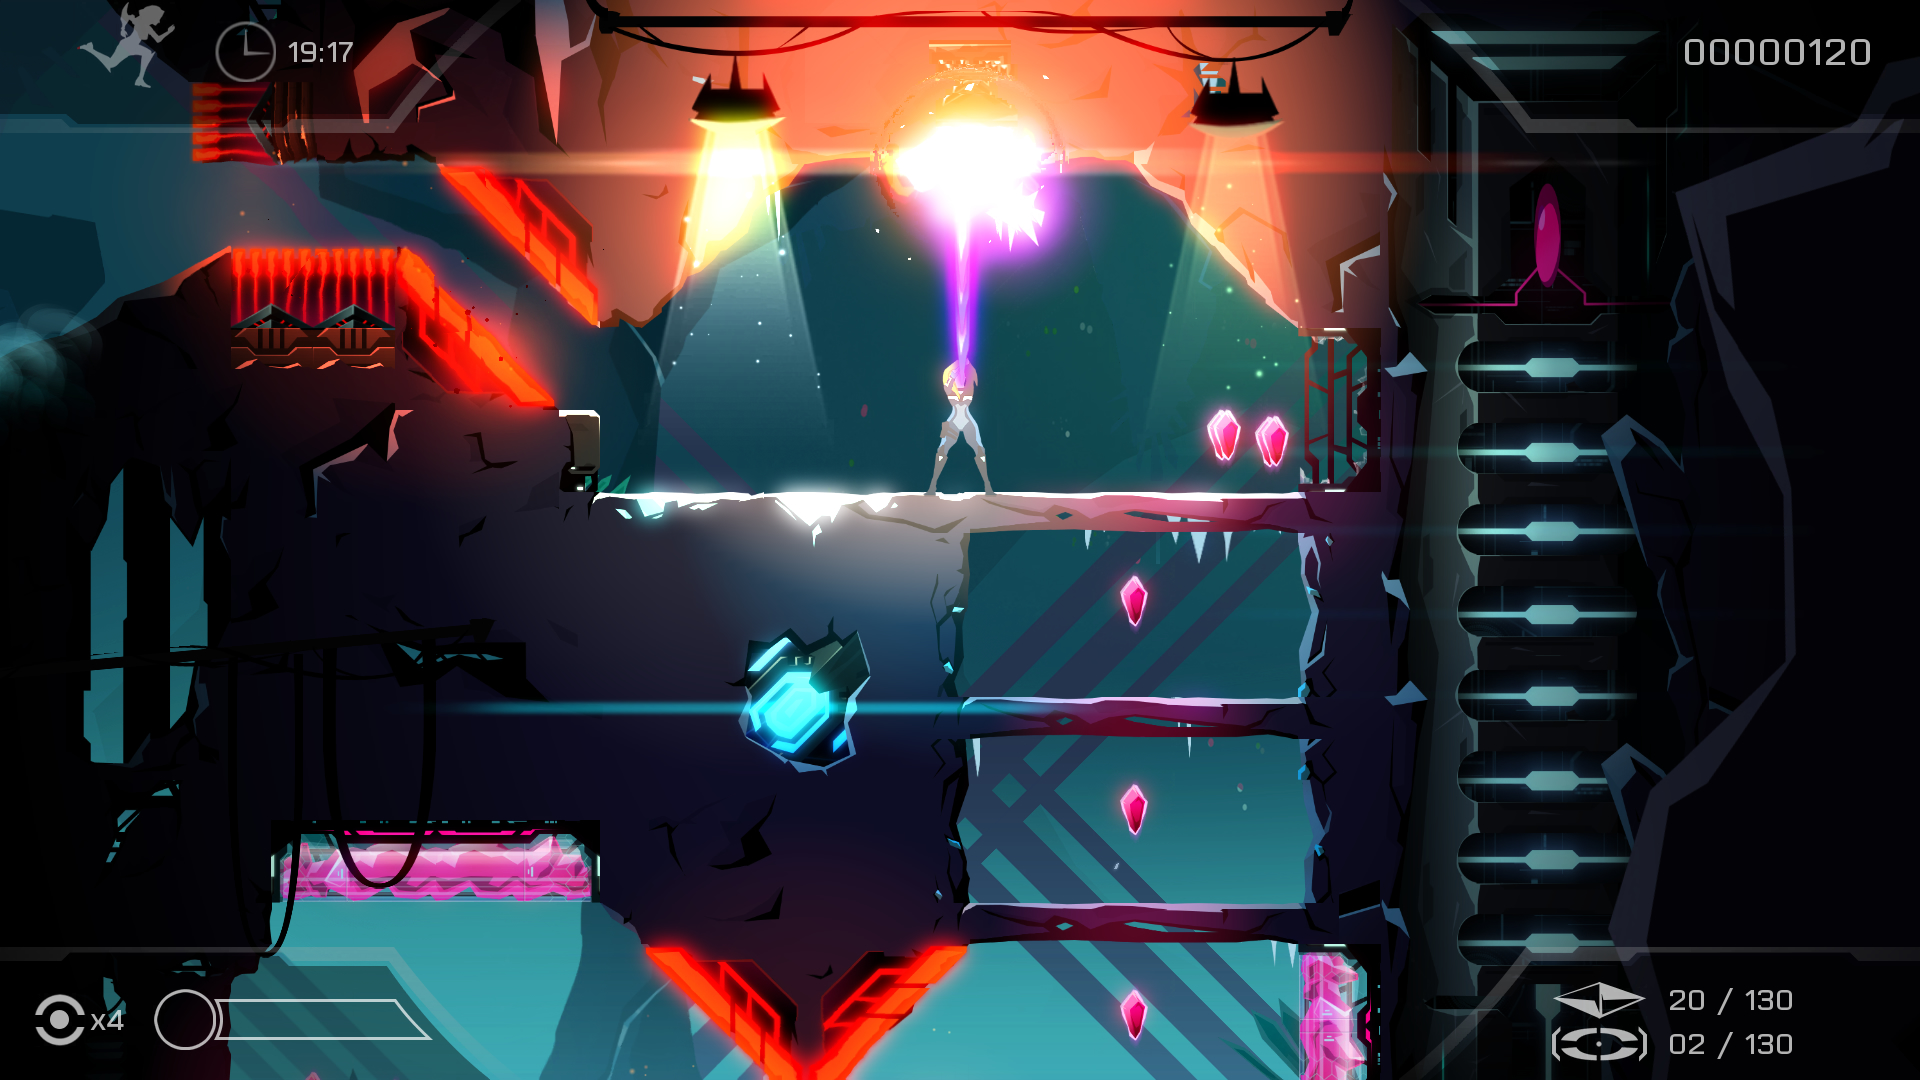 Mood and atmosphere is given the utmost importance in Velocity 2X.